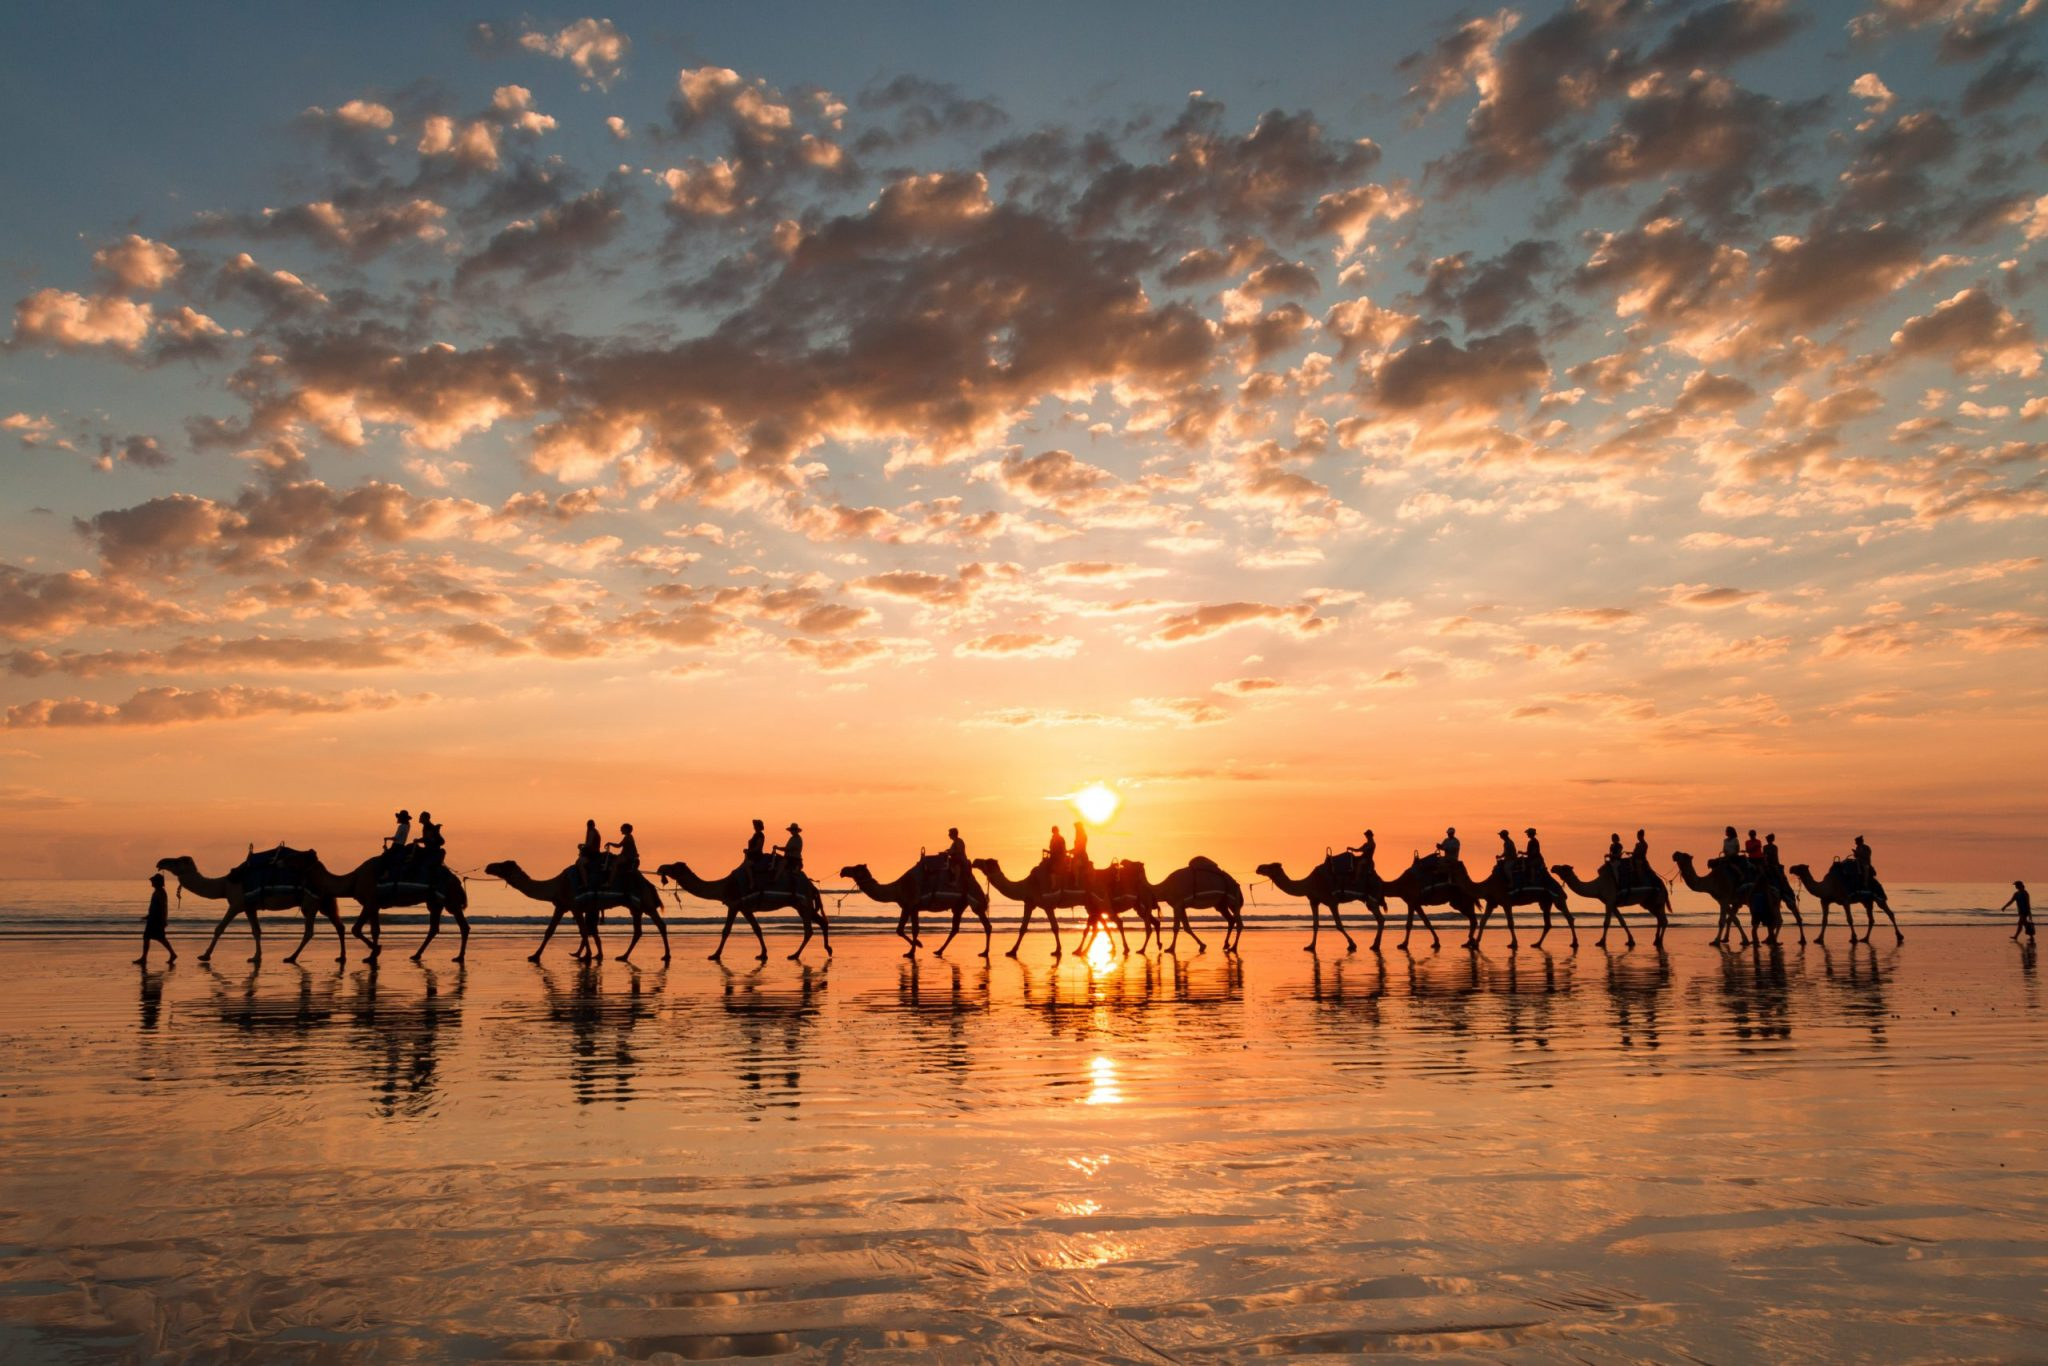 Broome, WA Sunset silhouette of the camels on Cable Beach, Broome, Western Australia.